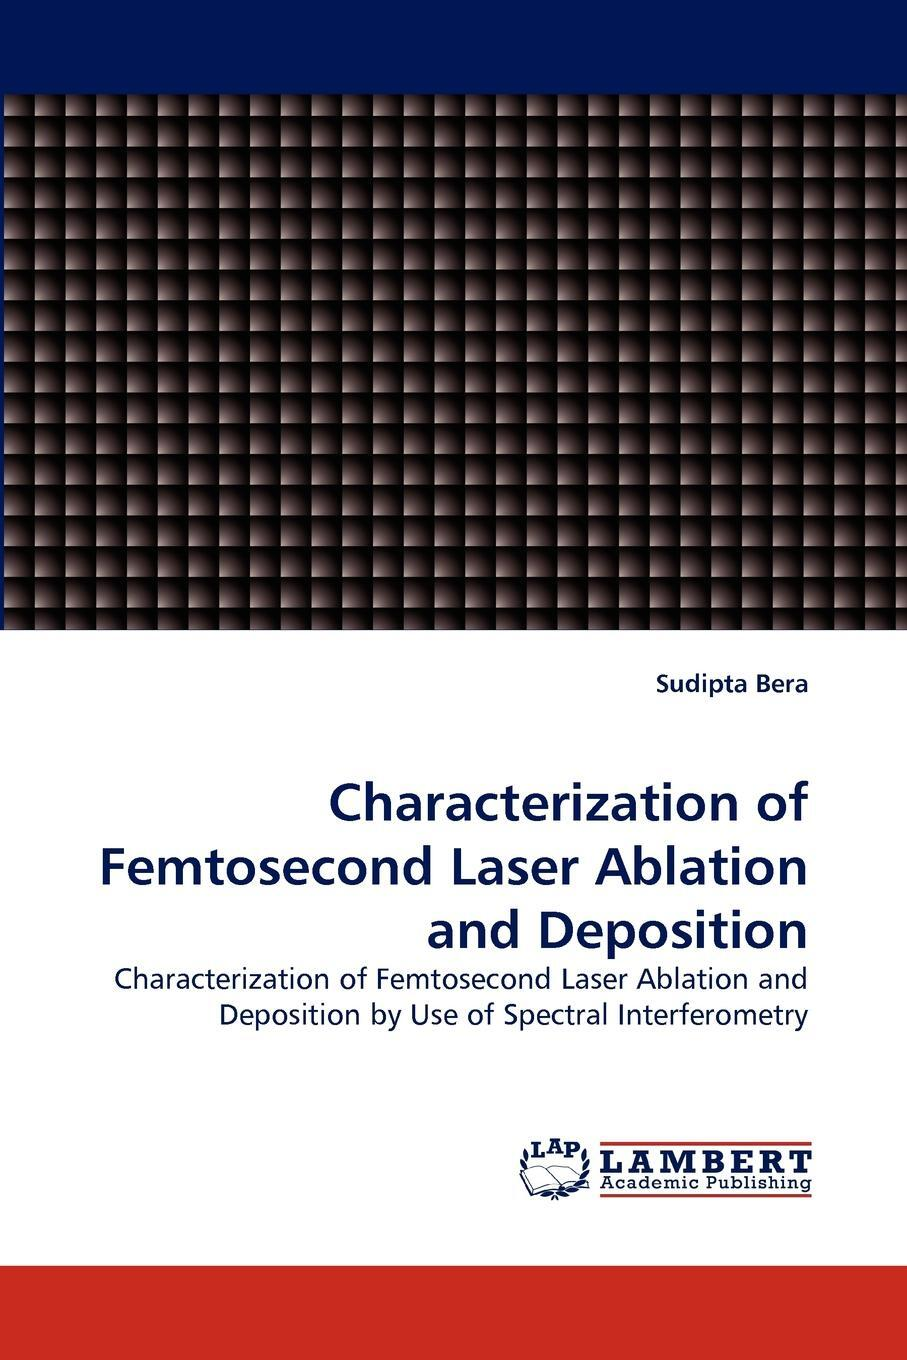 Characterization of Femtosecond Laser Ablation and Deposition